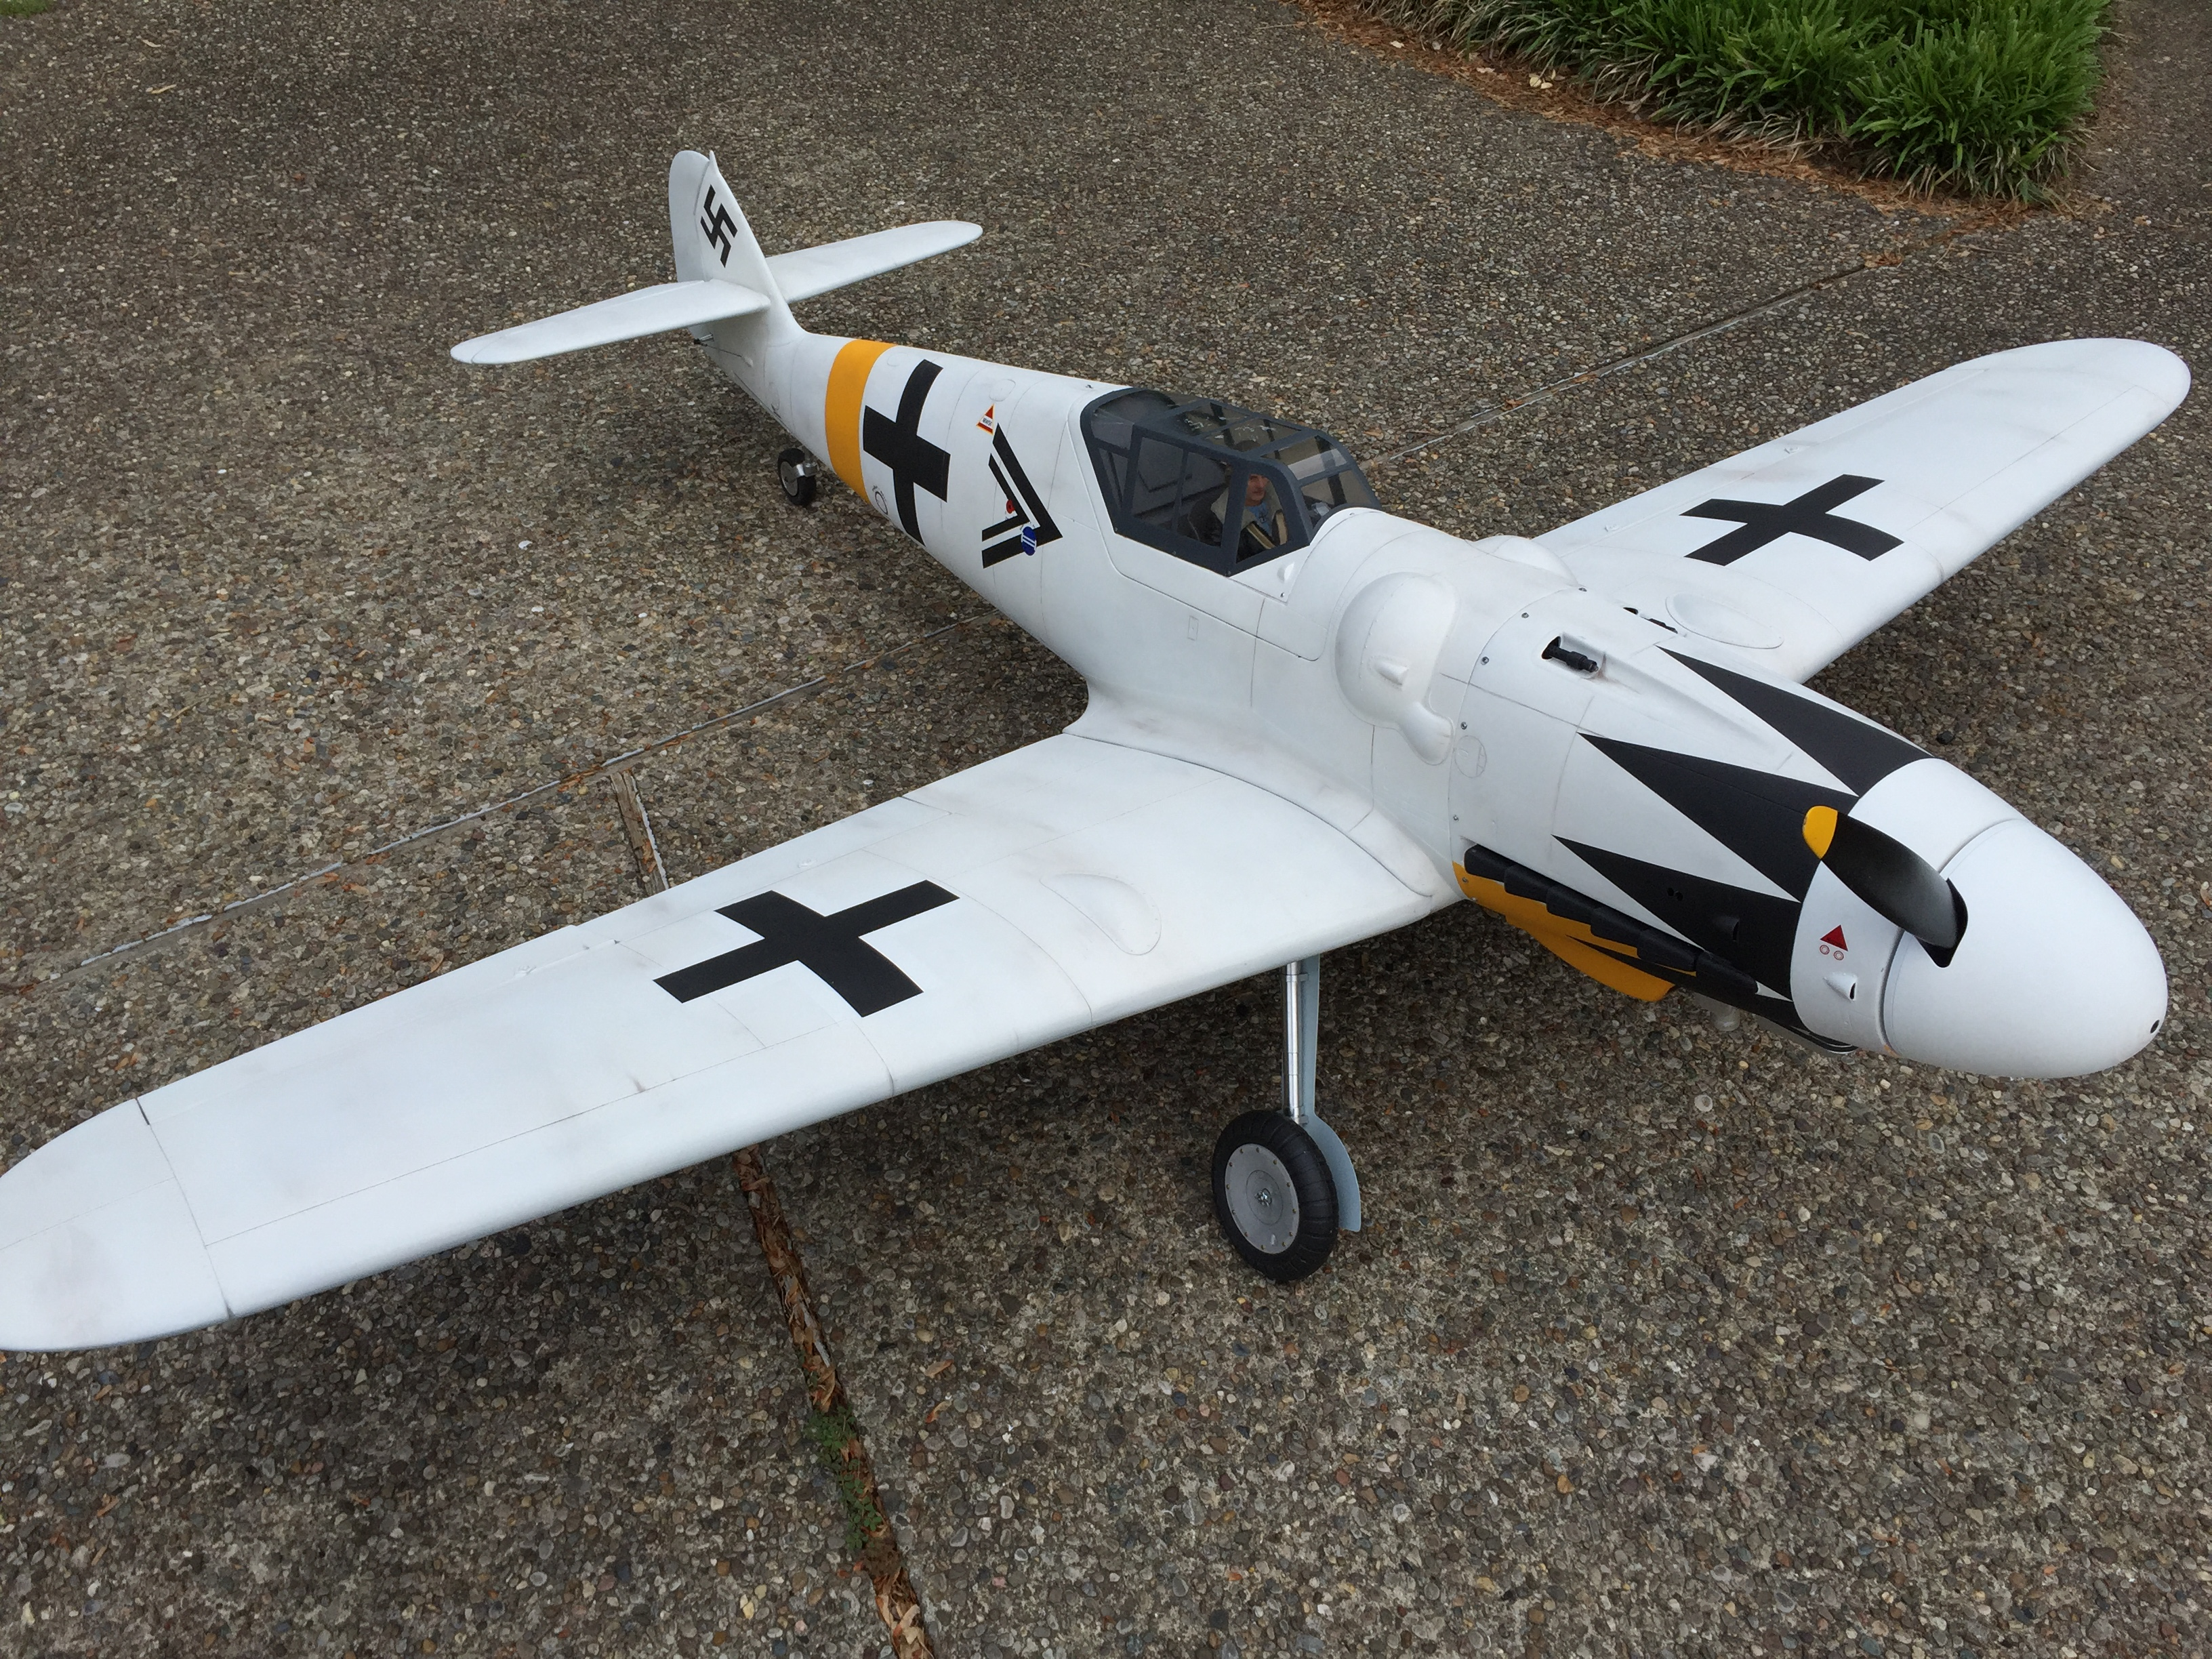 Click image for larger version  Name:Bf 109 049.JPG Views:38 Size:3.47 MB ID:2174645